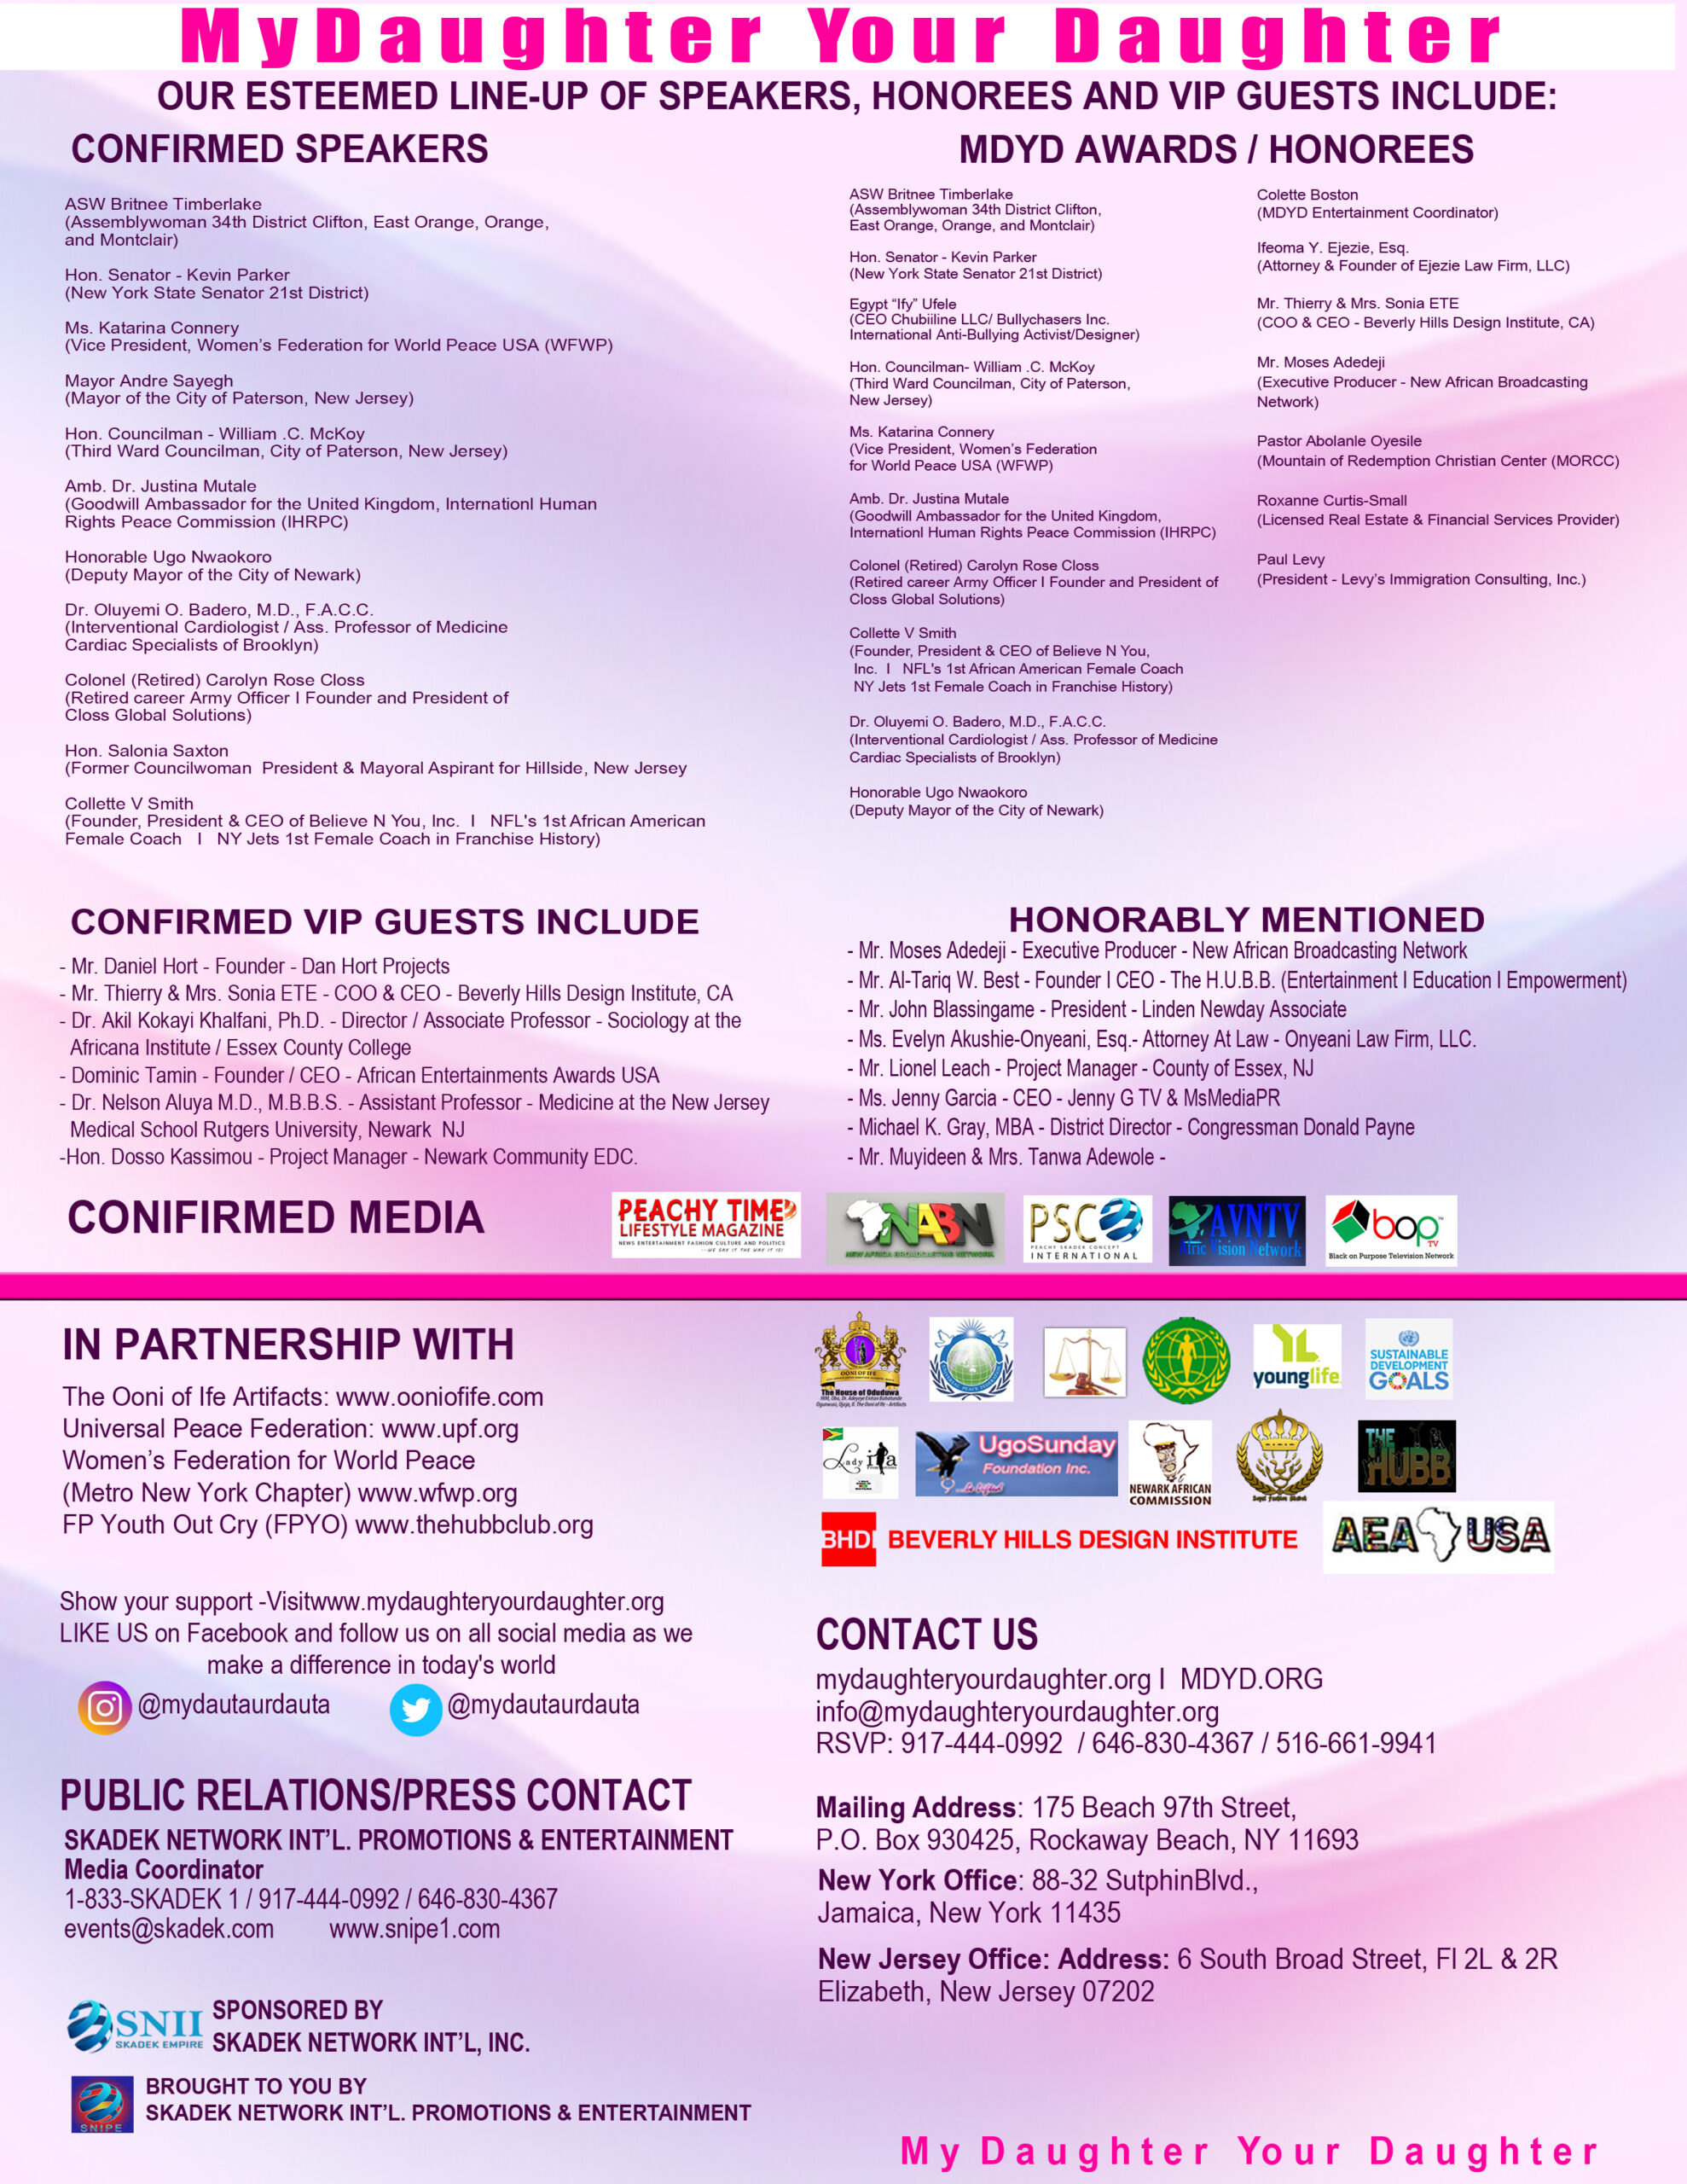 MDYD 2019 Overview page 2